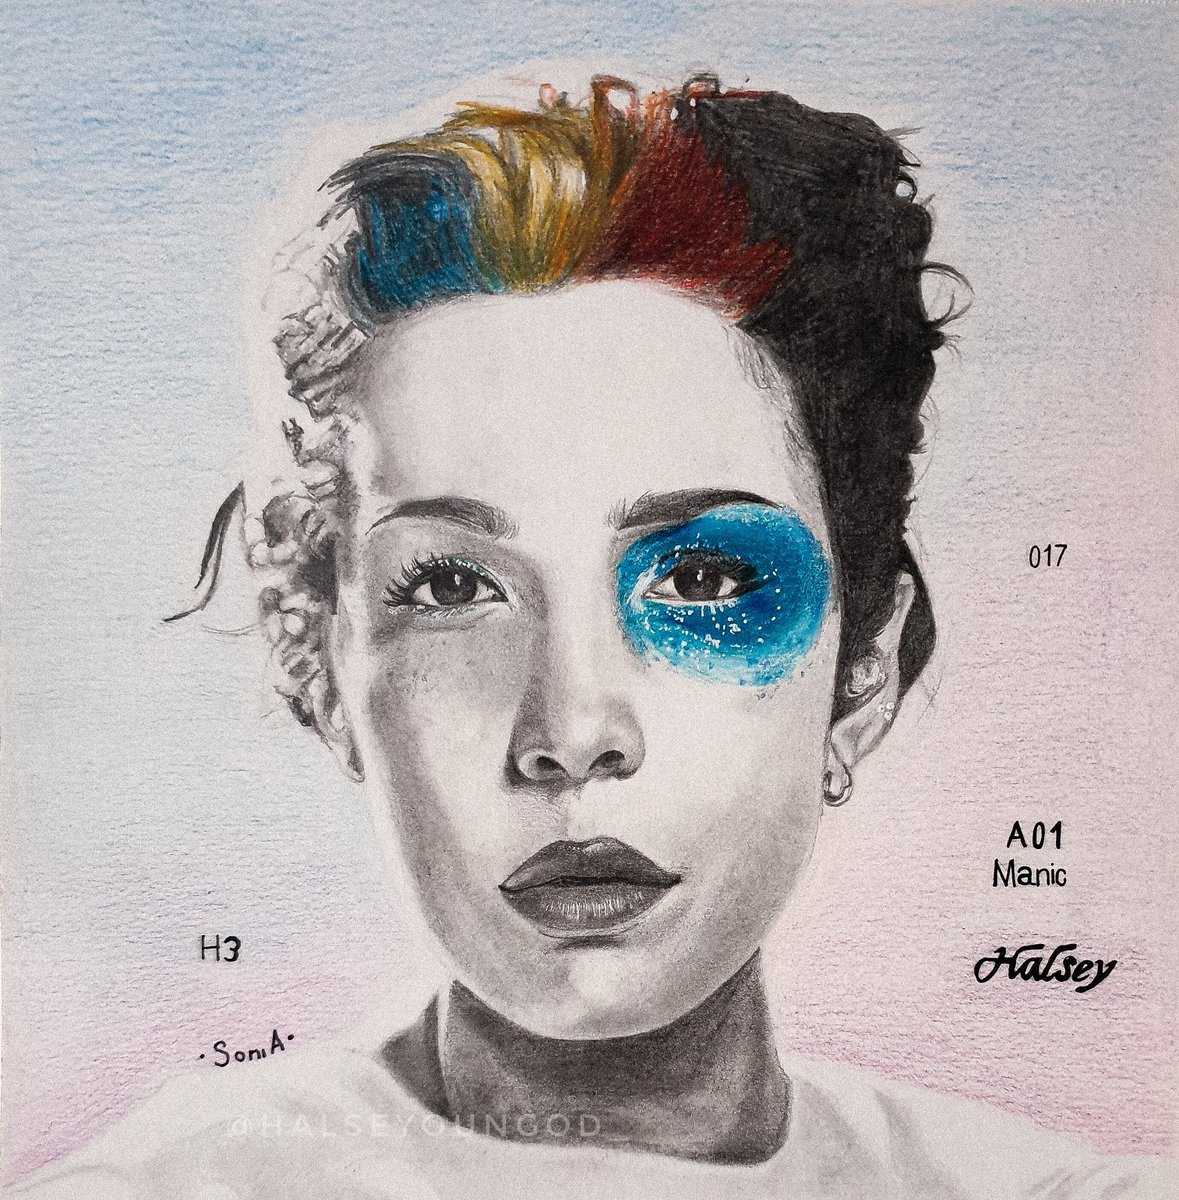 #manicanniversary  I did this drawing of manic's cover almost a year ago, I wanted to thank you @halsey for this album, it literally changed my life in some ways, I met amazing people thanks to this album, I had one of the best days of my life when I went to the tour, thank you+